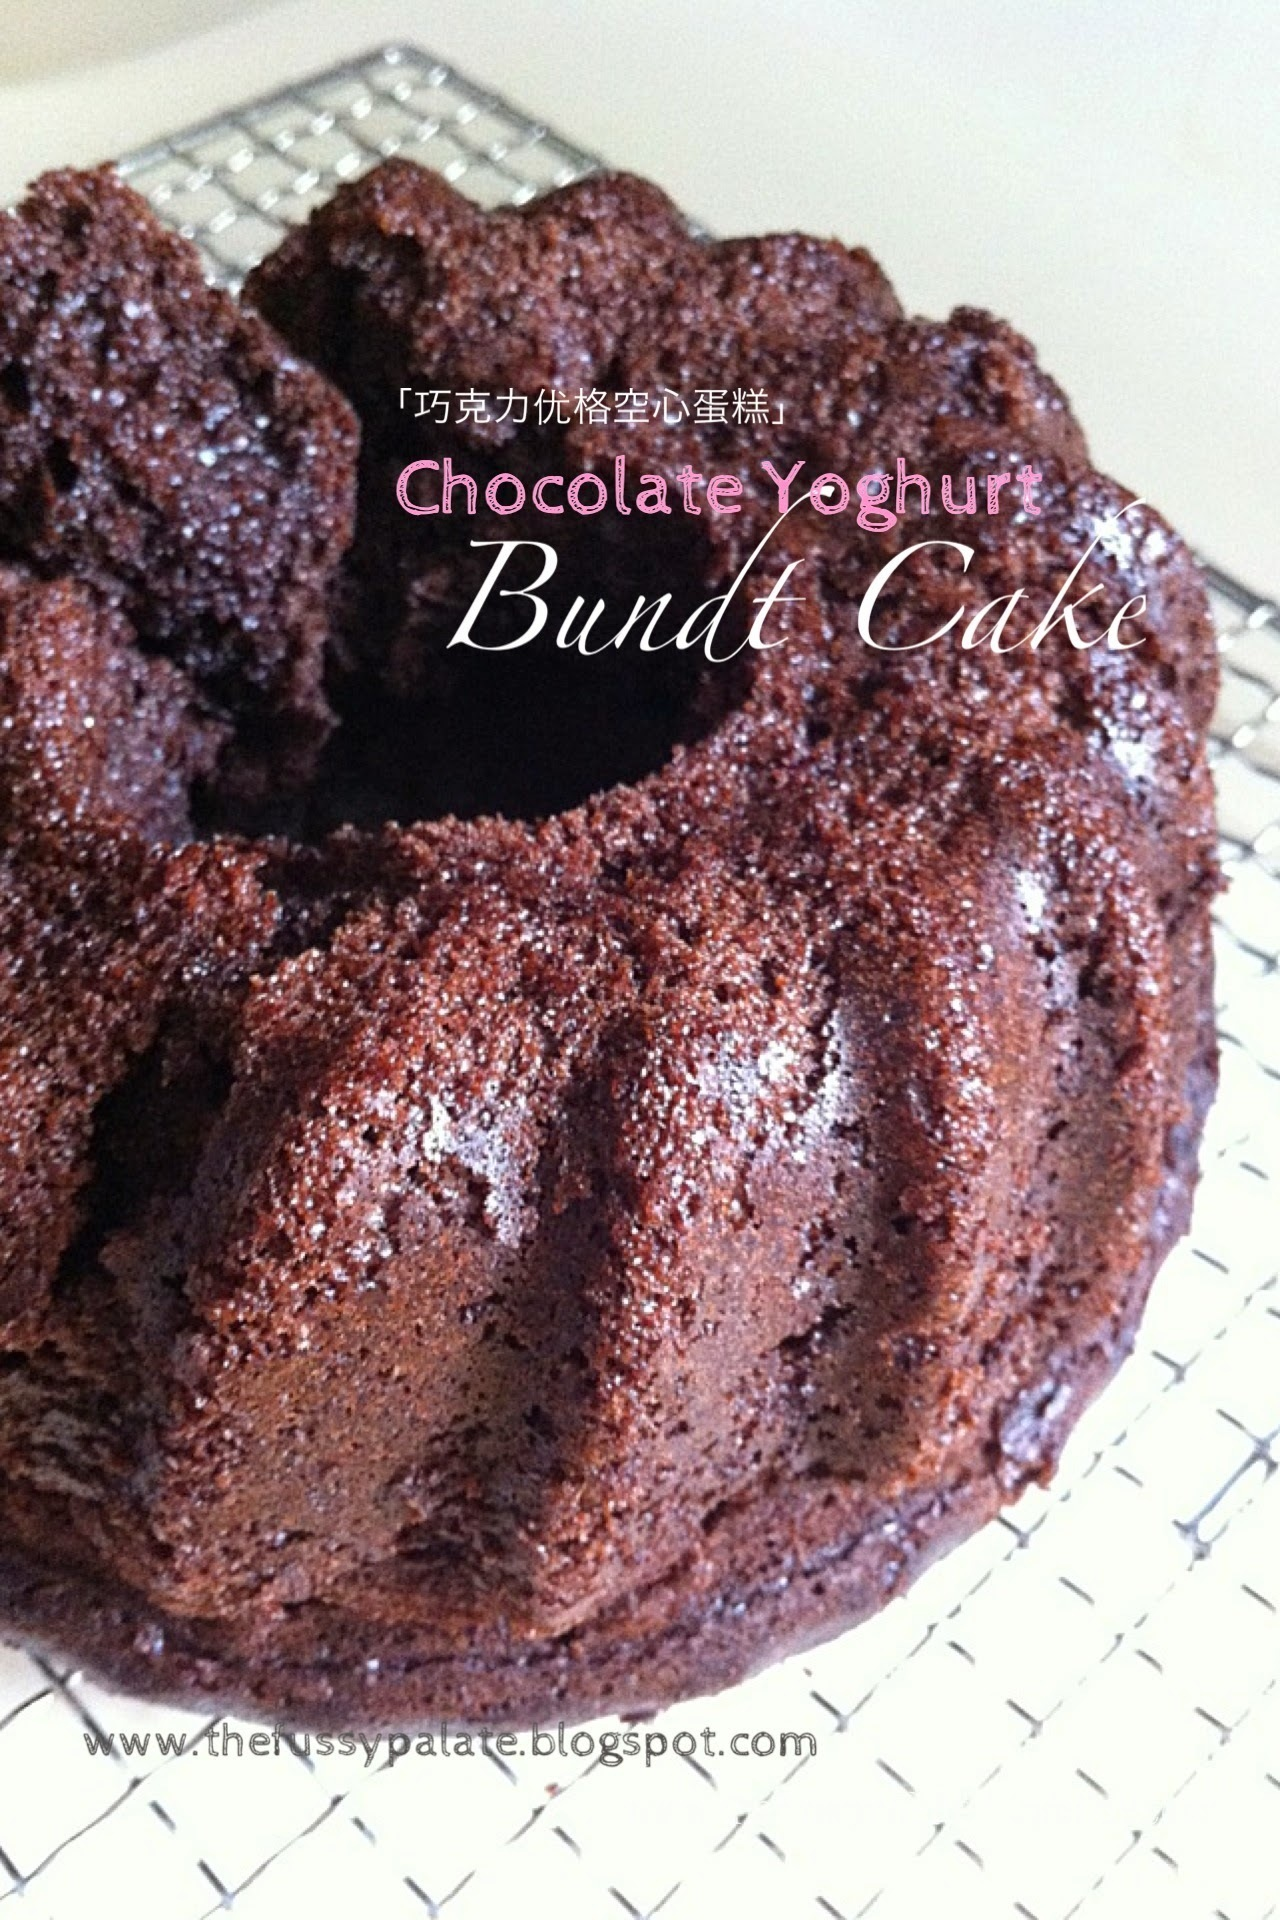 Chocolate Yoghurt Bundt Cake